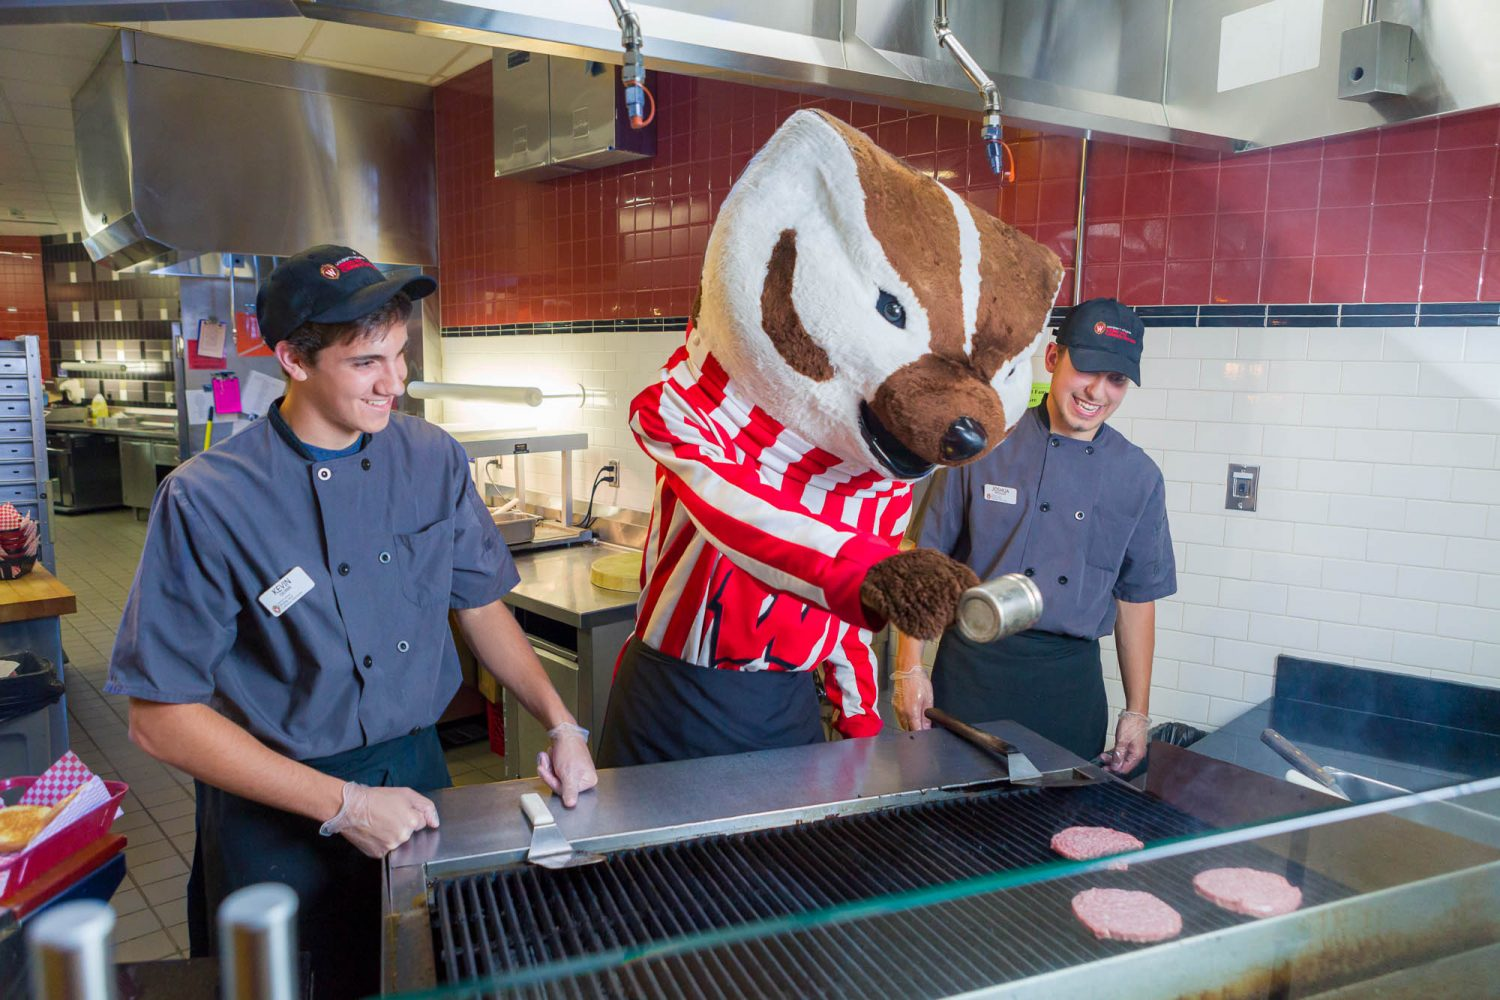 Bucky cooking with Dining staff